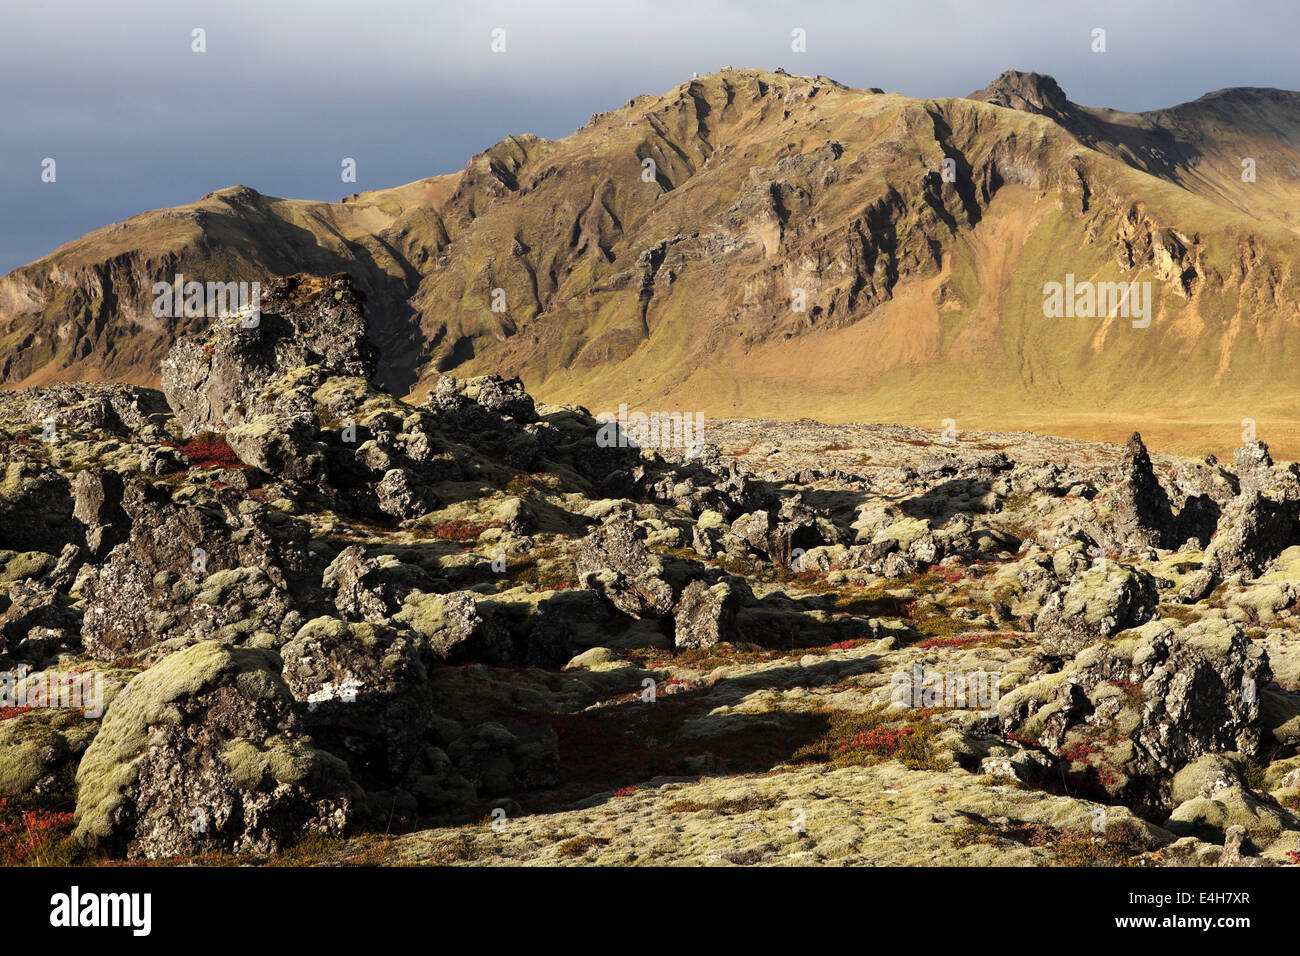 Lava field at the Beserkjaravn near Bjarnahofn, Iceland. - Stock Image